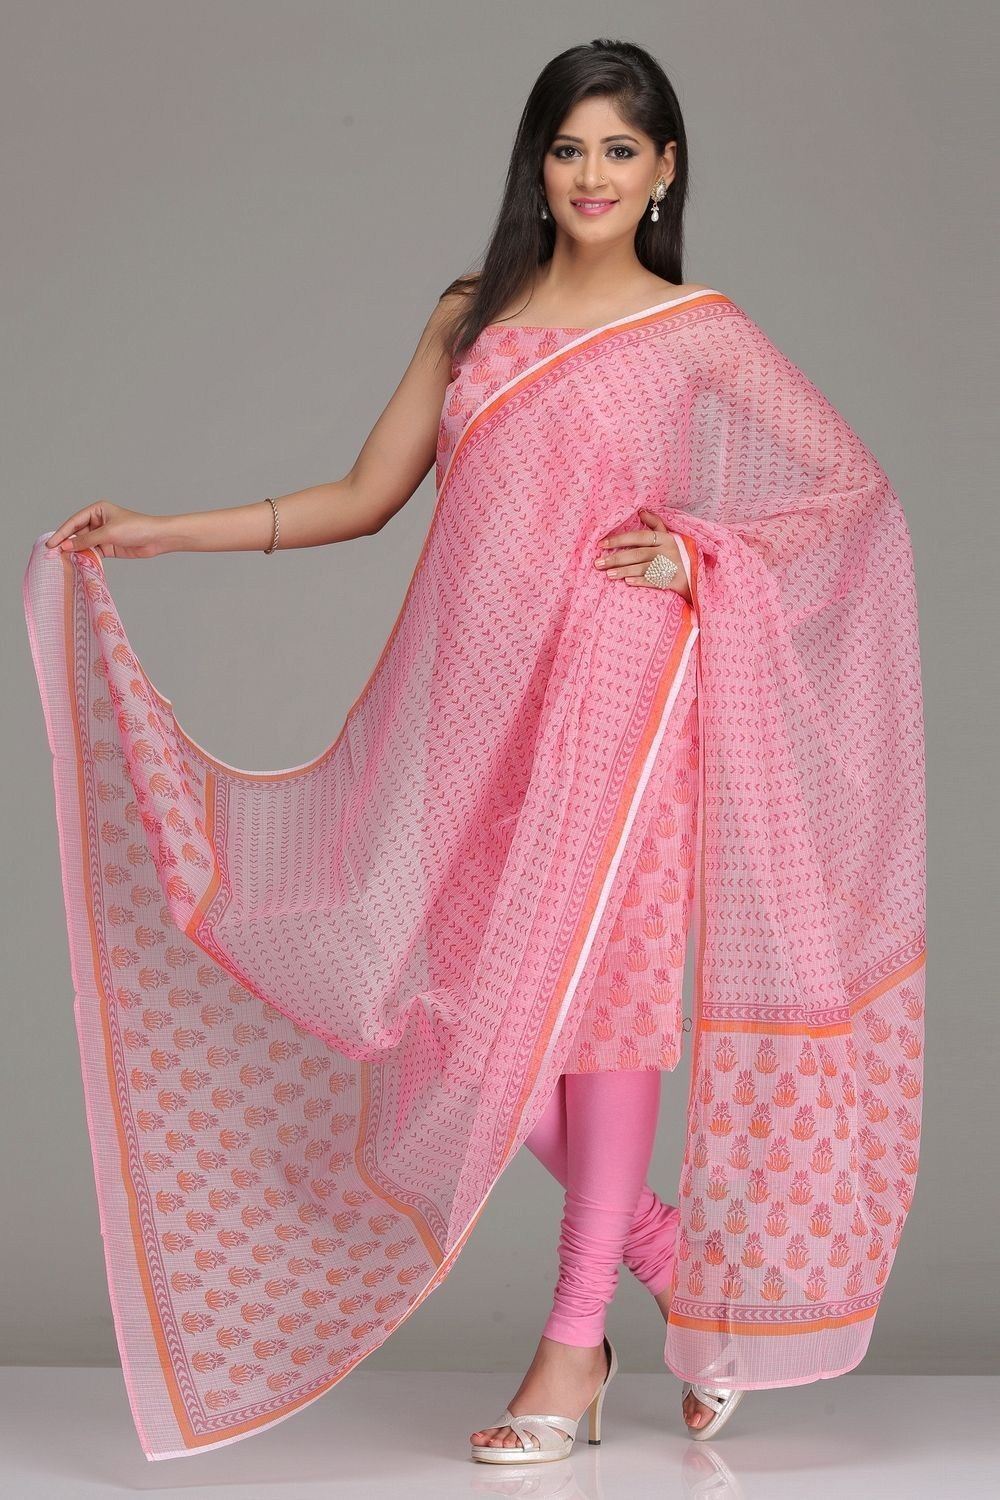 Pink Unstitched Kota Kurta & Dupatta Set With Dark Pink And Orange ...